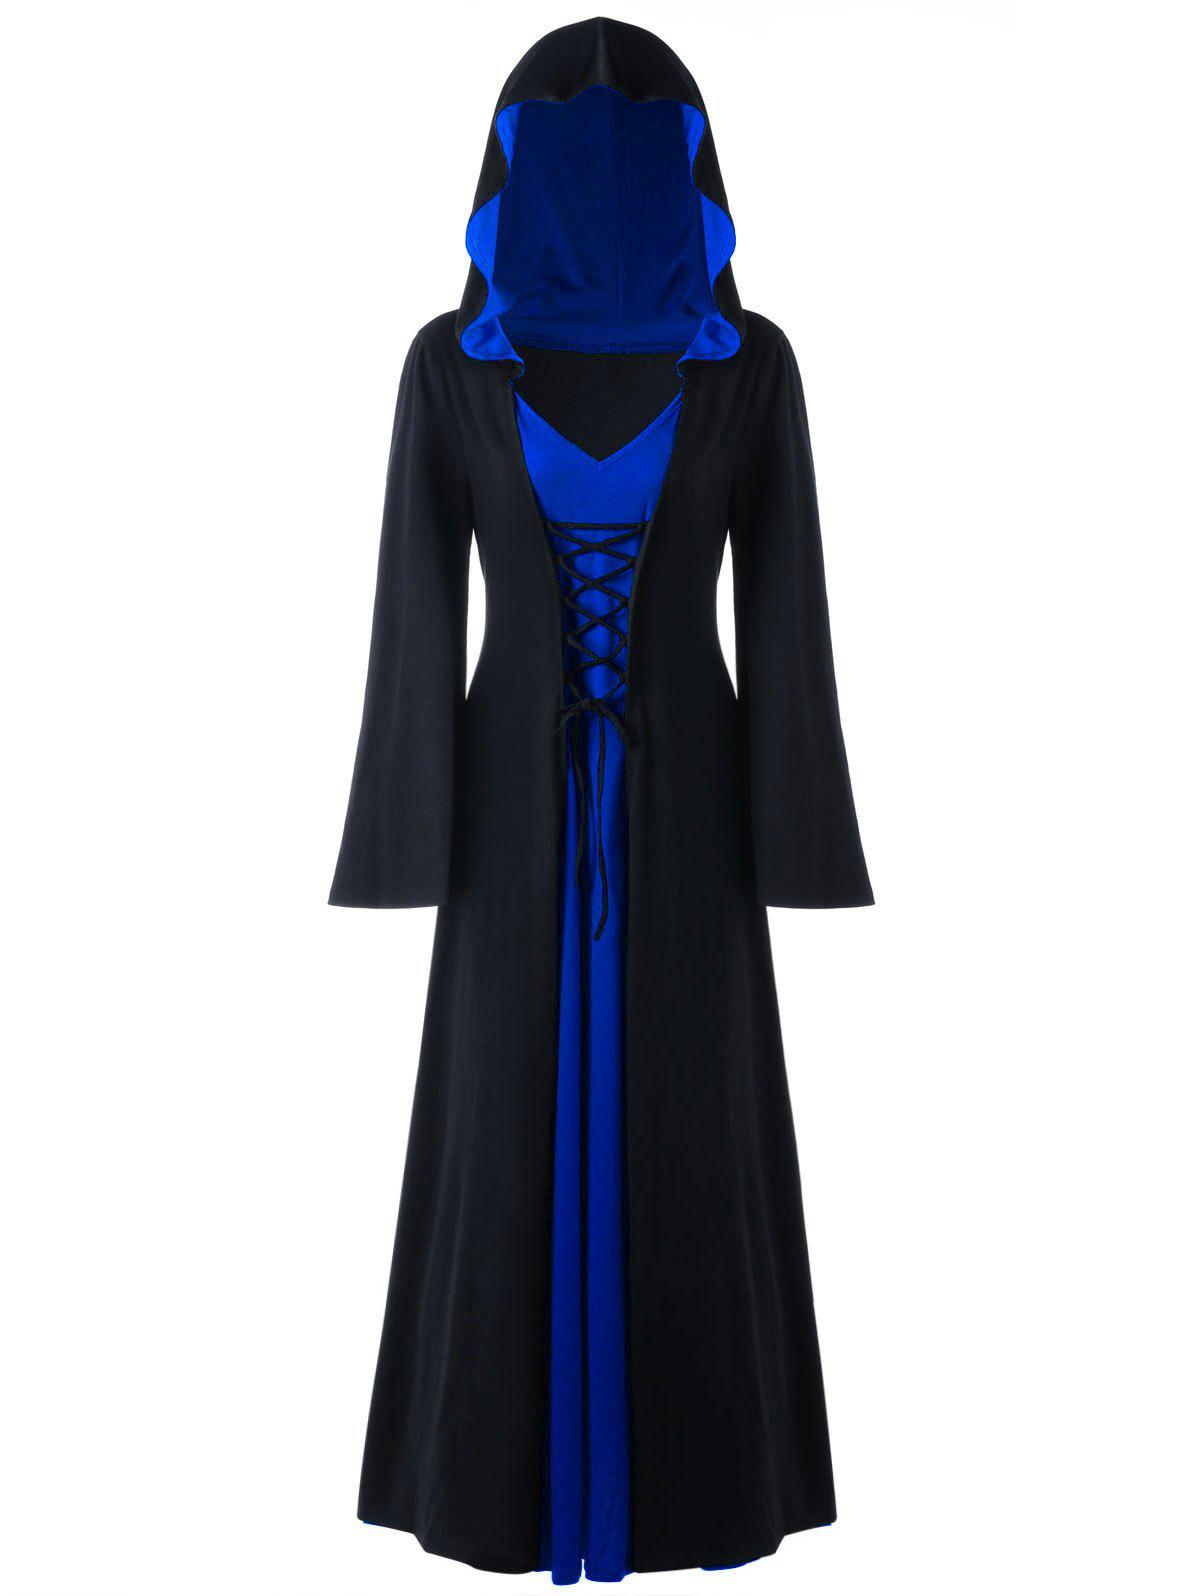 Halloween Plus Size Lace Up Hooded Maxi DressWOMEN<br><br>Size: 4XL; Color: BLUE; Style: Novelty; Material: Polyester,Spandex; Silhouette: A-Line; Dresses Length: Ankle-Length; Neckline: Hooded; Sleeve Length: Long Sleeves; Pattern Type: Solid; With Belt: No; Season: Fall,Spring; Weight: 0.6700kg; Package Contents: 1 x Dress;